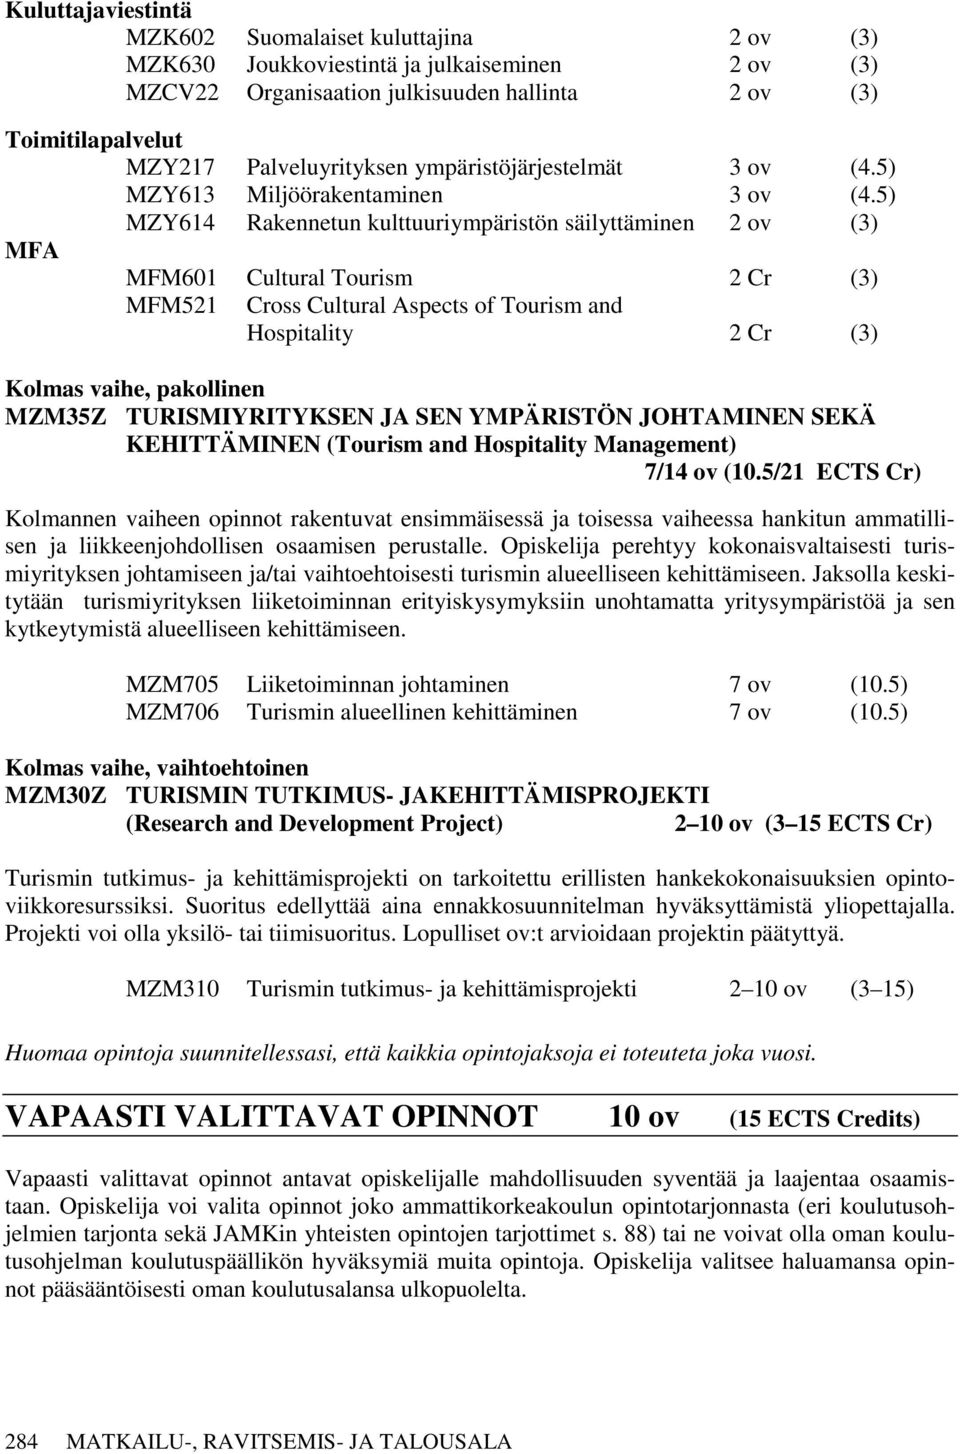 5) MZY614 Rakennetun kulttuuriympäristön säilyttäminen 2 ov (3) MFA MFM601 Cultural Tourism 2 Cr (3) MFM521 Cross Cultural Aspects of Tourism and Hospitality 2 Cr (3) Kolmas vaihe, pakollinen MZM35Z